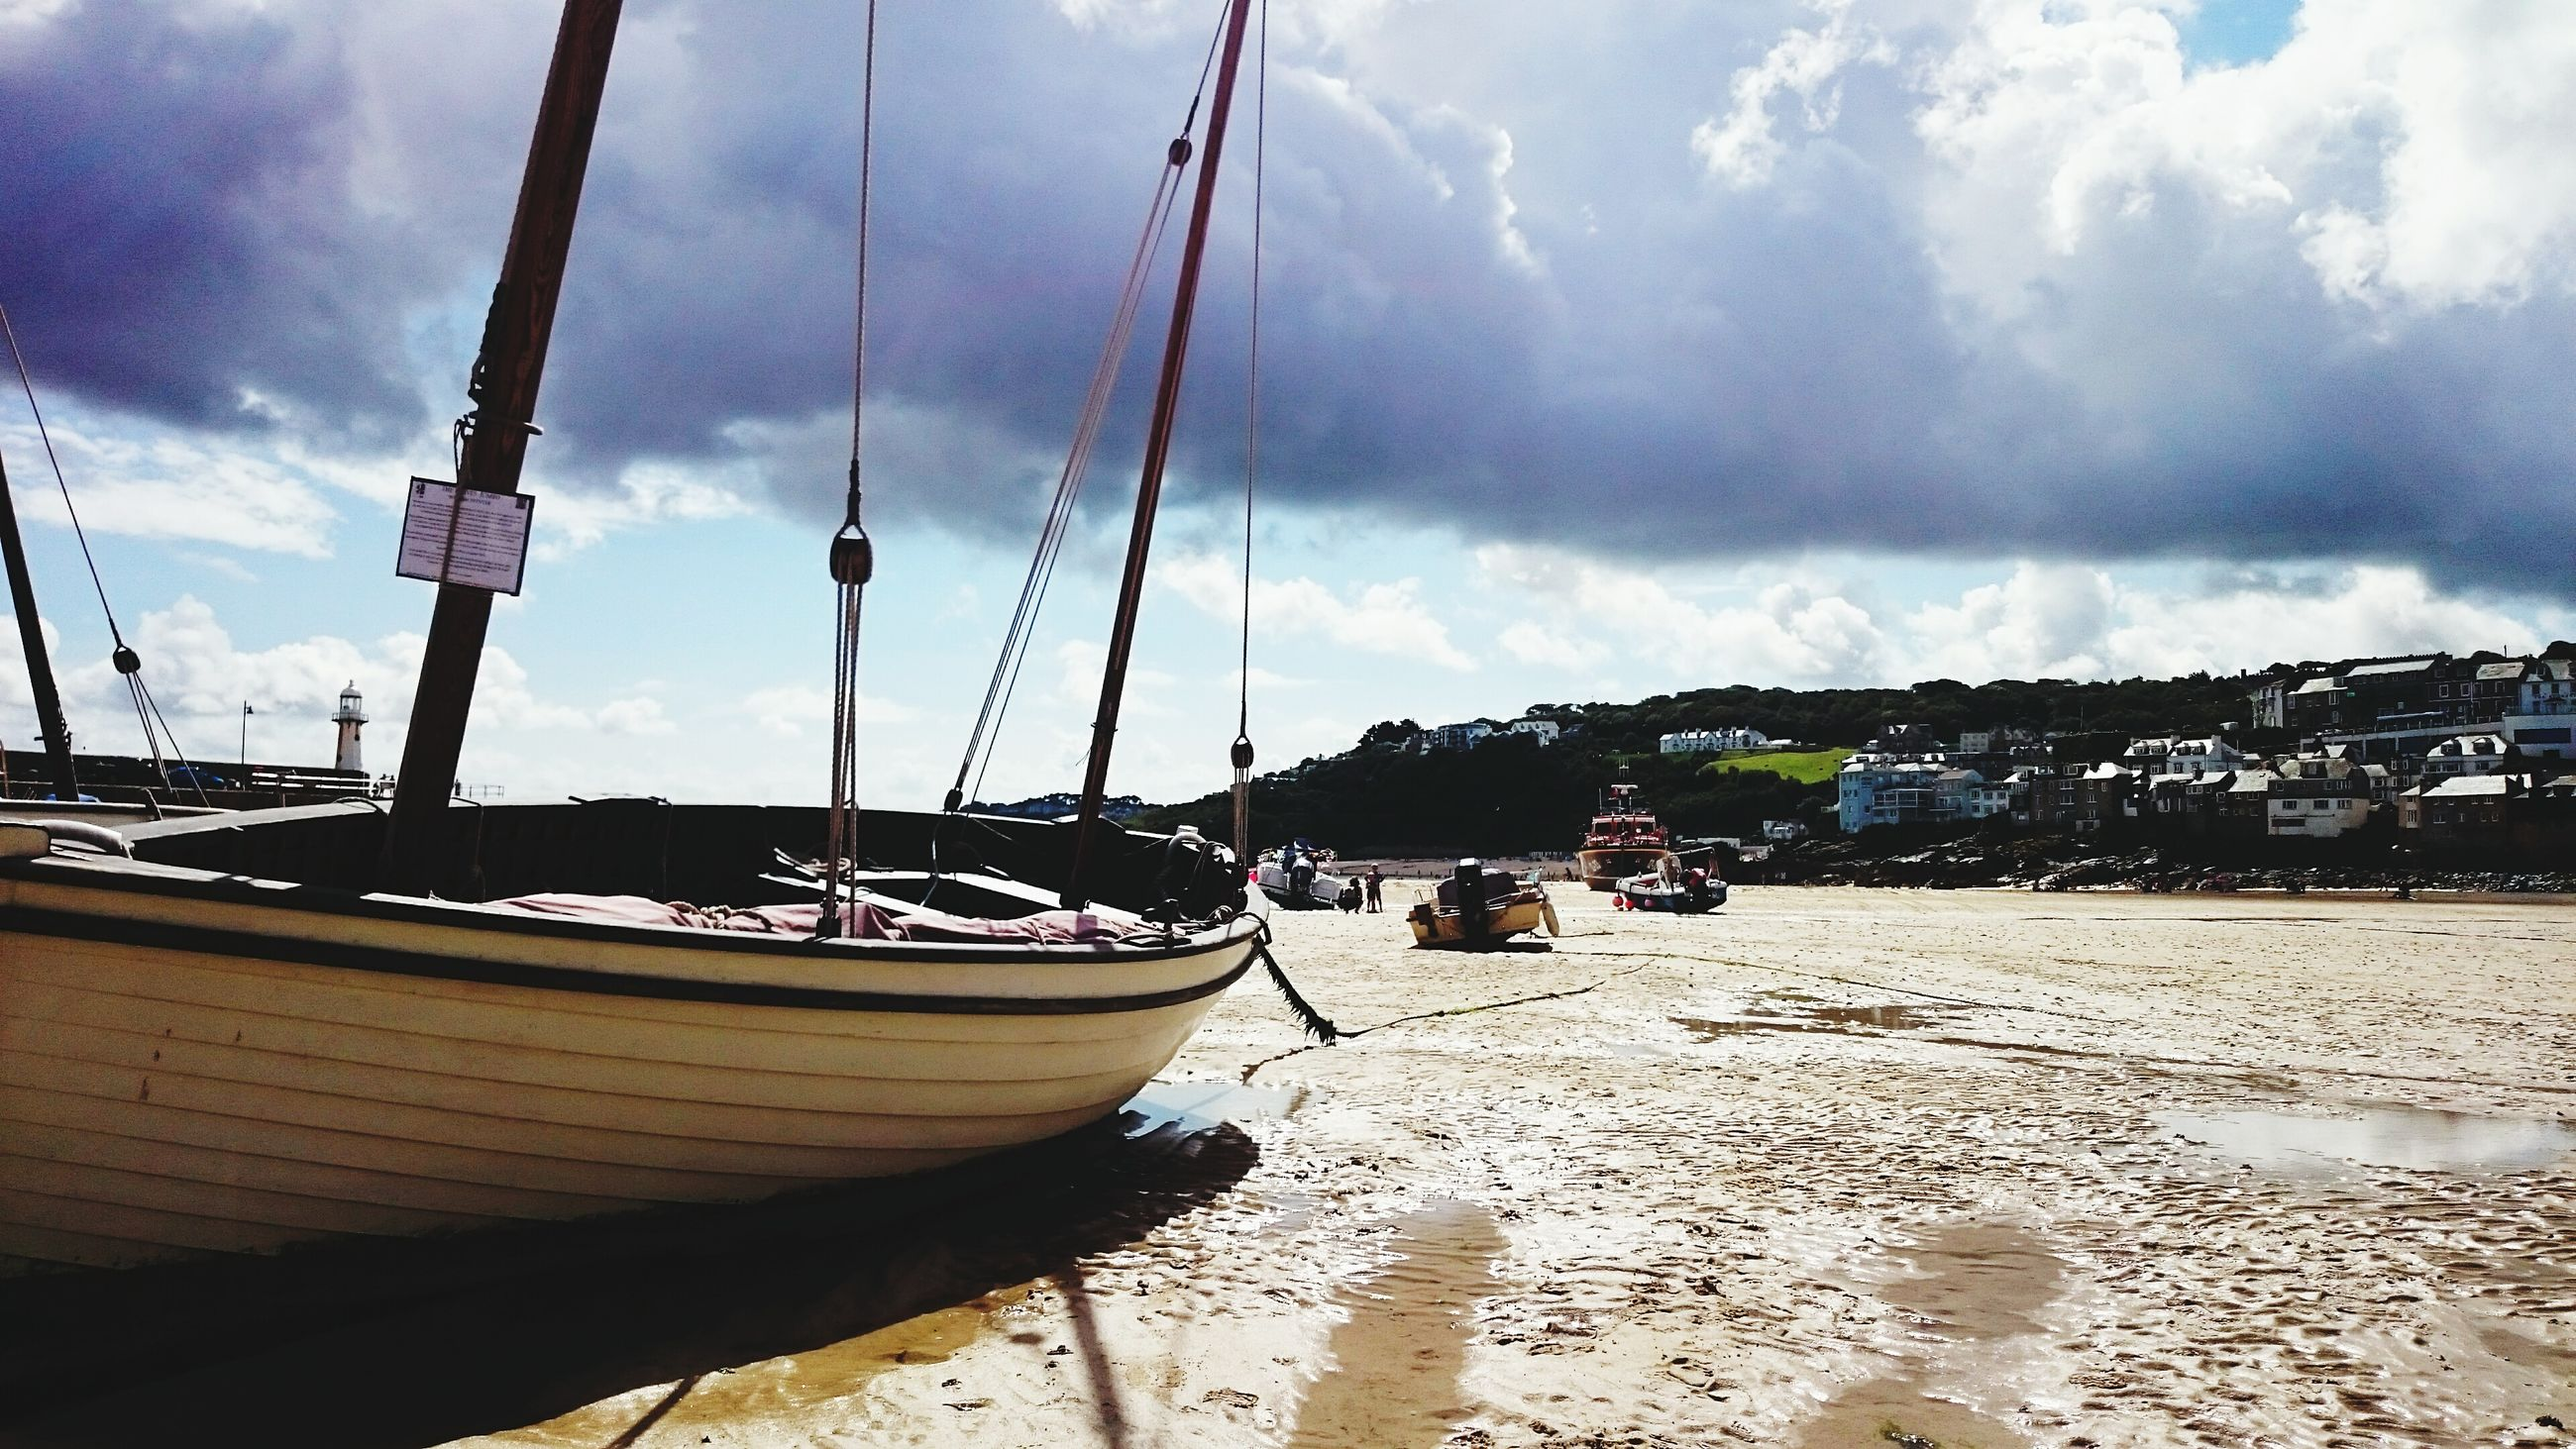 Boats moored at beach against cloudy sky